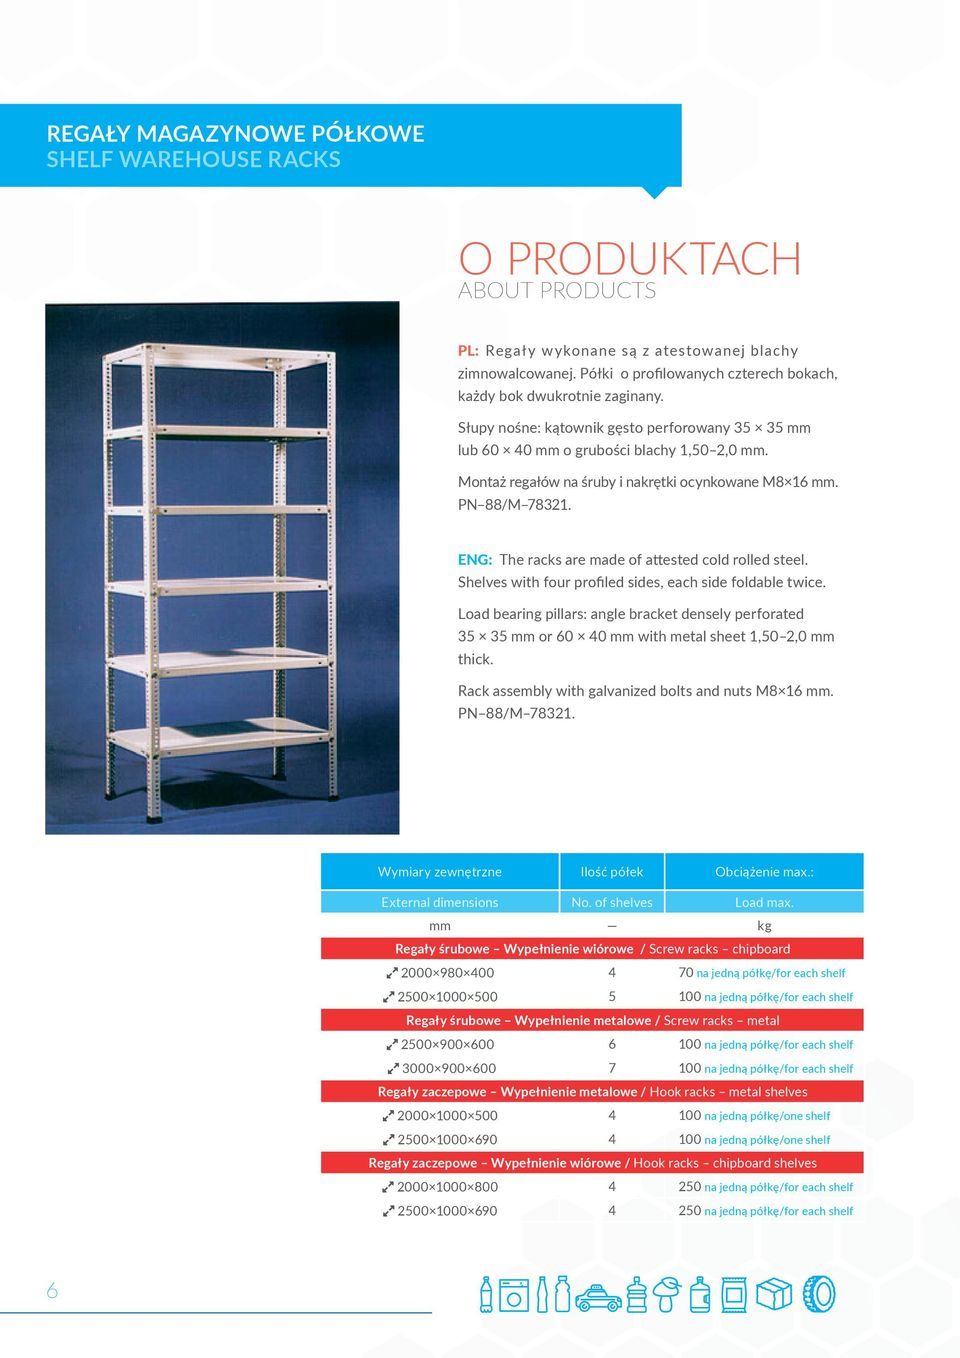 Montaż regałów na śruby i nakrętki ocynkowane M8 16 mm. PN 88/M 78321. ENG: The racks are made of attested cold rolled steel. Shelves with four profiled sides, each side foldable twice.